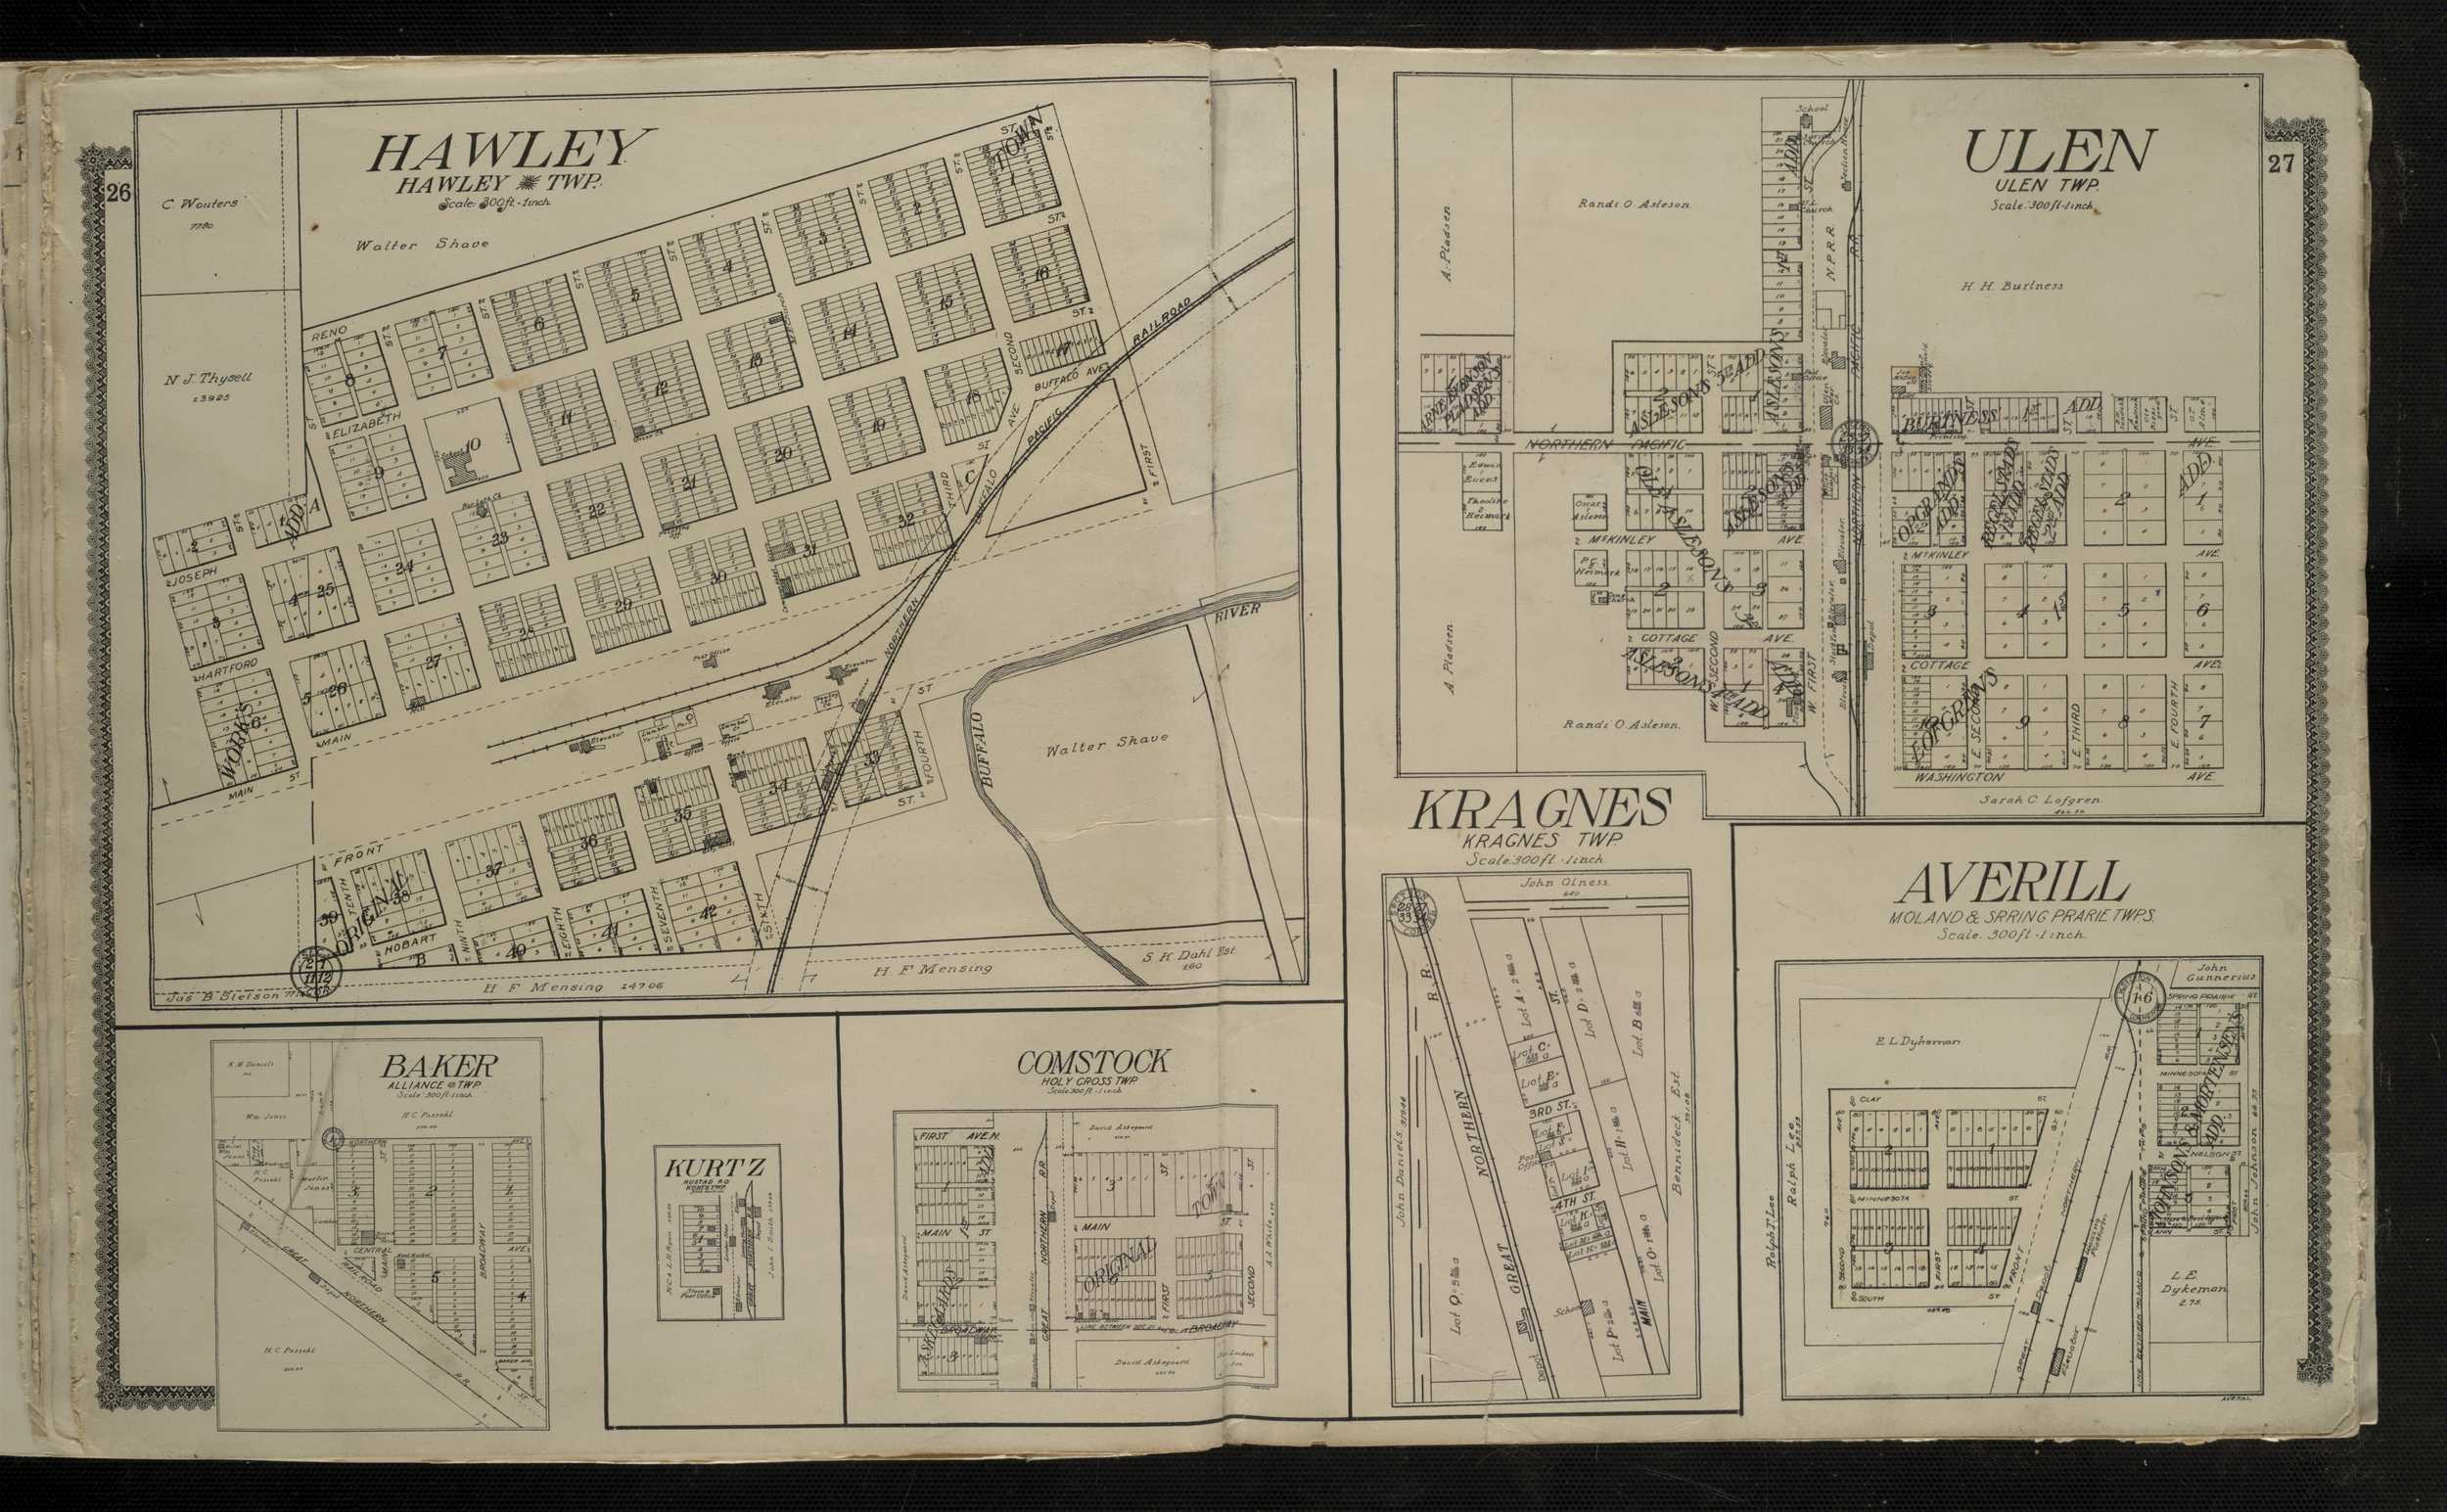 Digitized Plat Maps and Atlases | University of Minnesota Librariesulen township